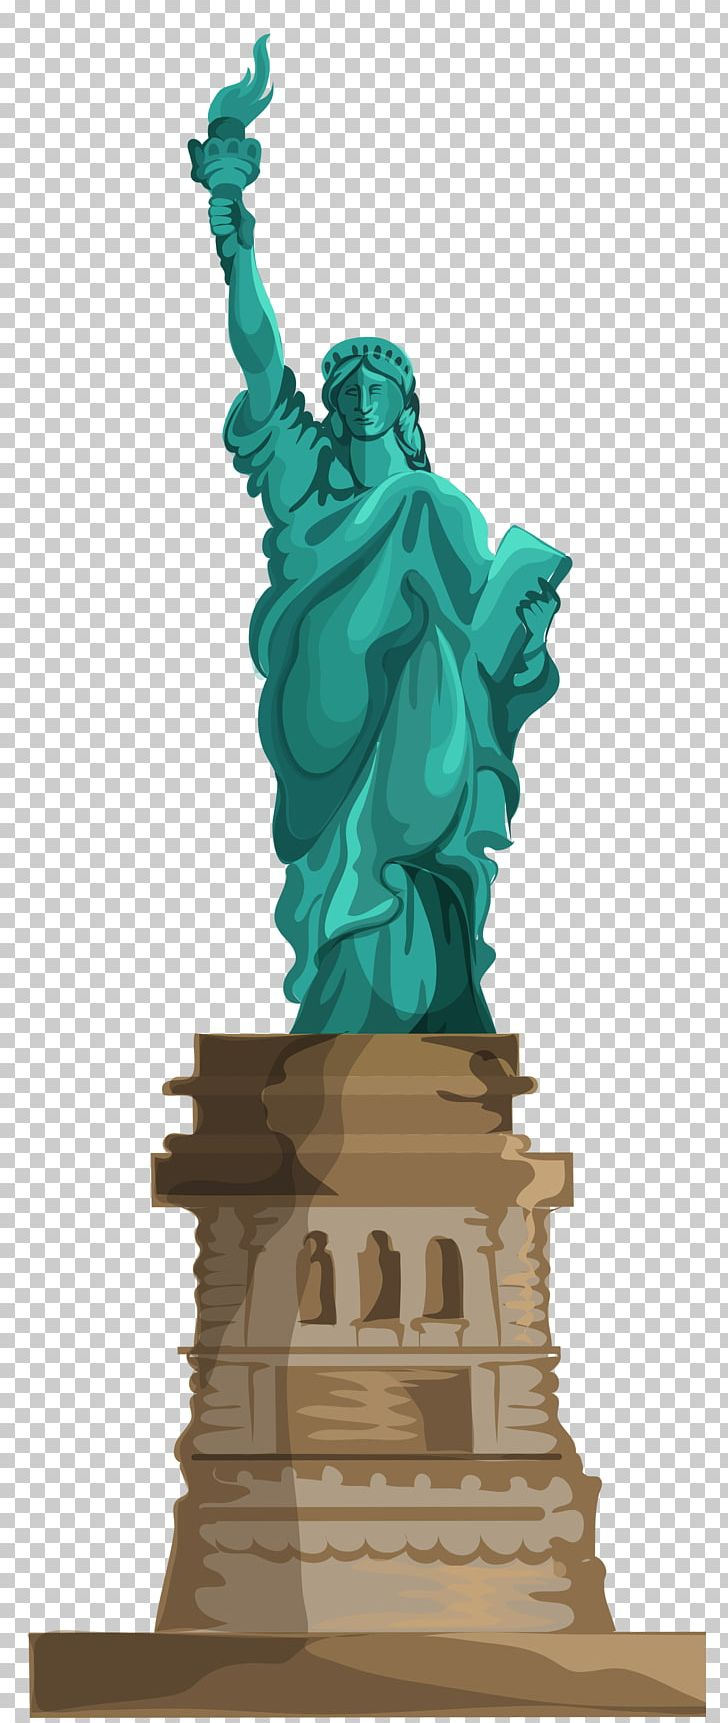 Statue Of Liberty Ellis Island New York Harbor Statue Of Freedom PNG, Clipart, Artwork, Classical Sculpture, Drawing, Ellis Island, Figurine Free PNG Download